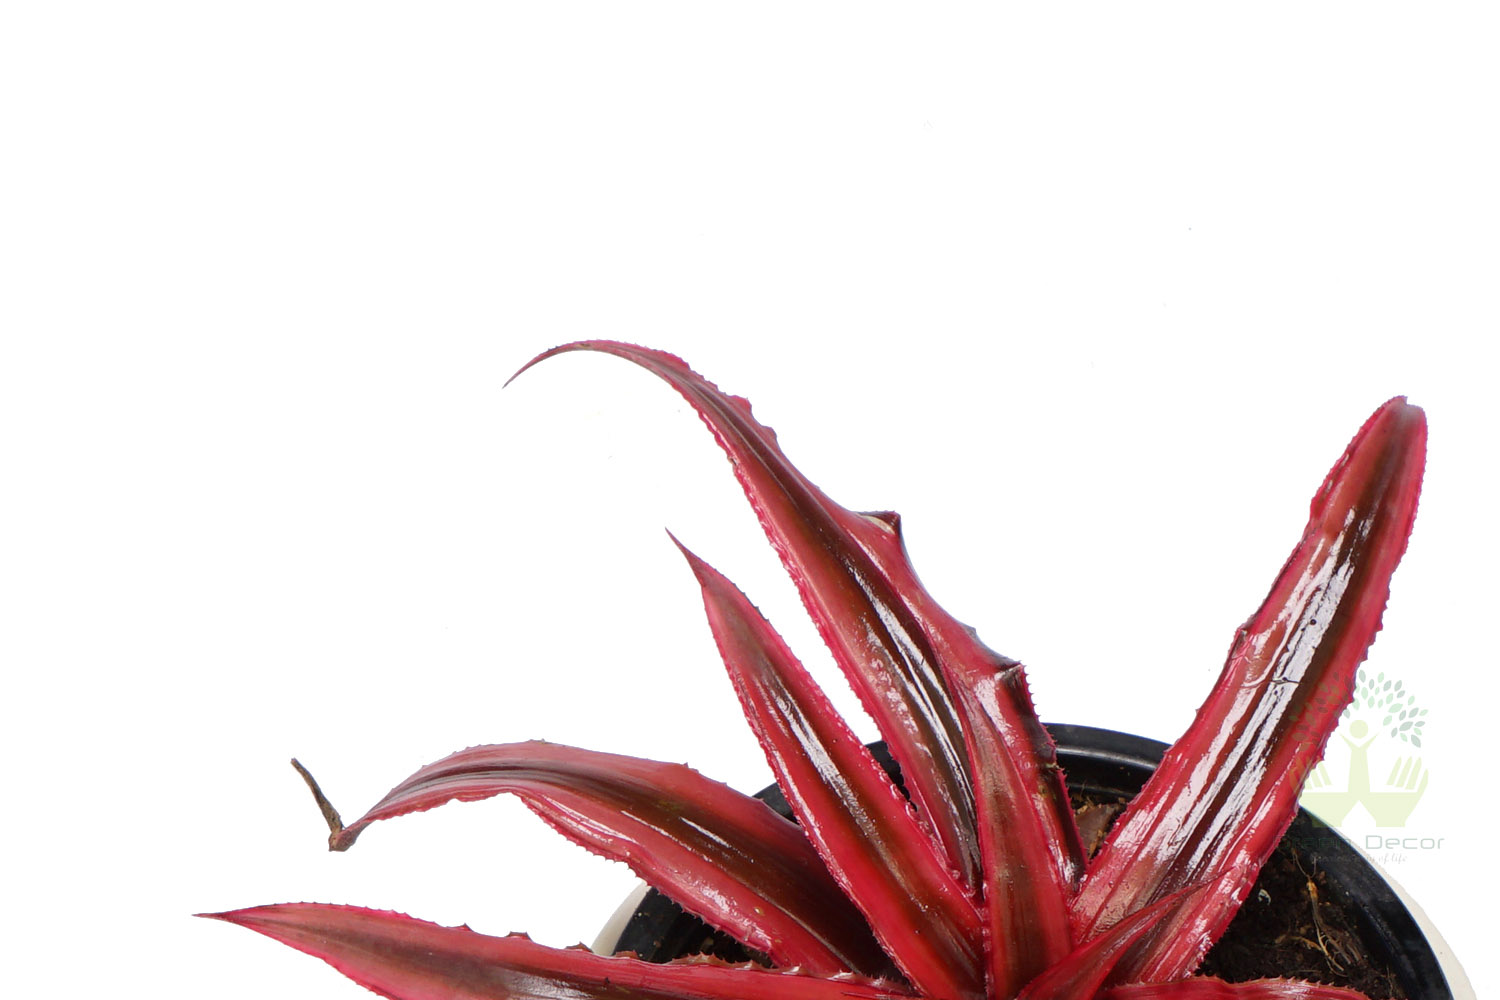 Buy Cryptanthus Plant Top View, White Pots and Seeds in Delhi NCR by the best online nursery shop Greendecor.